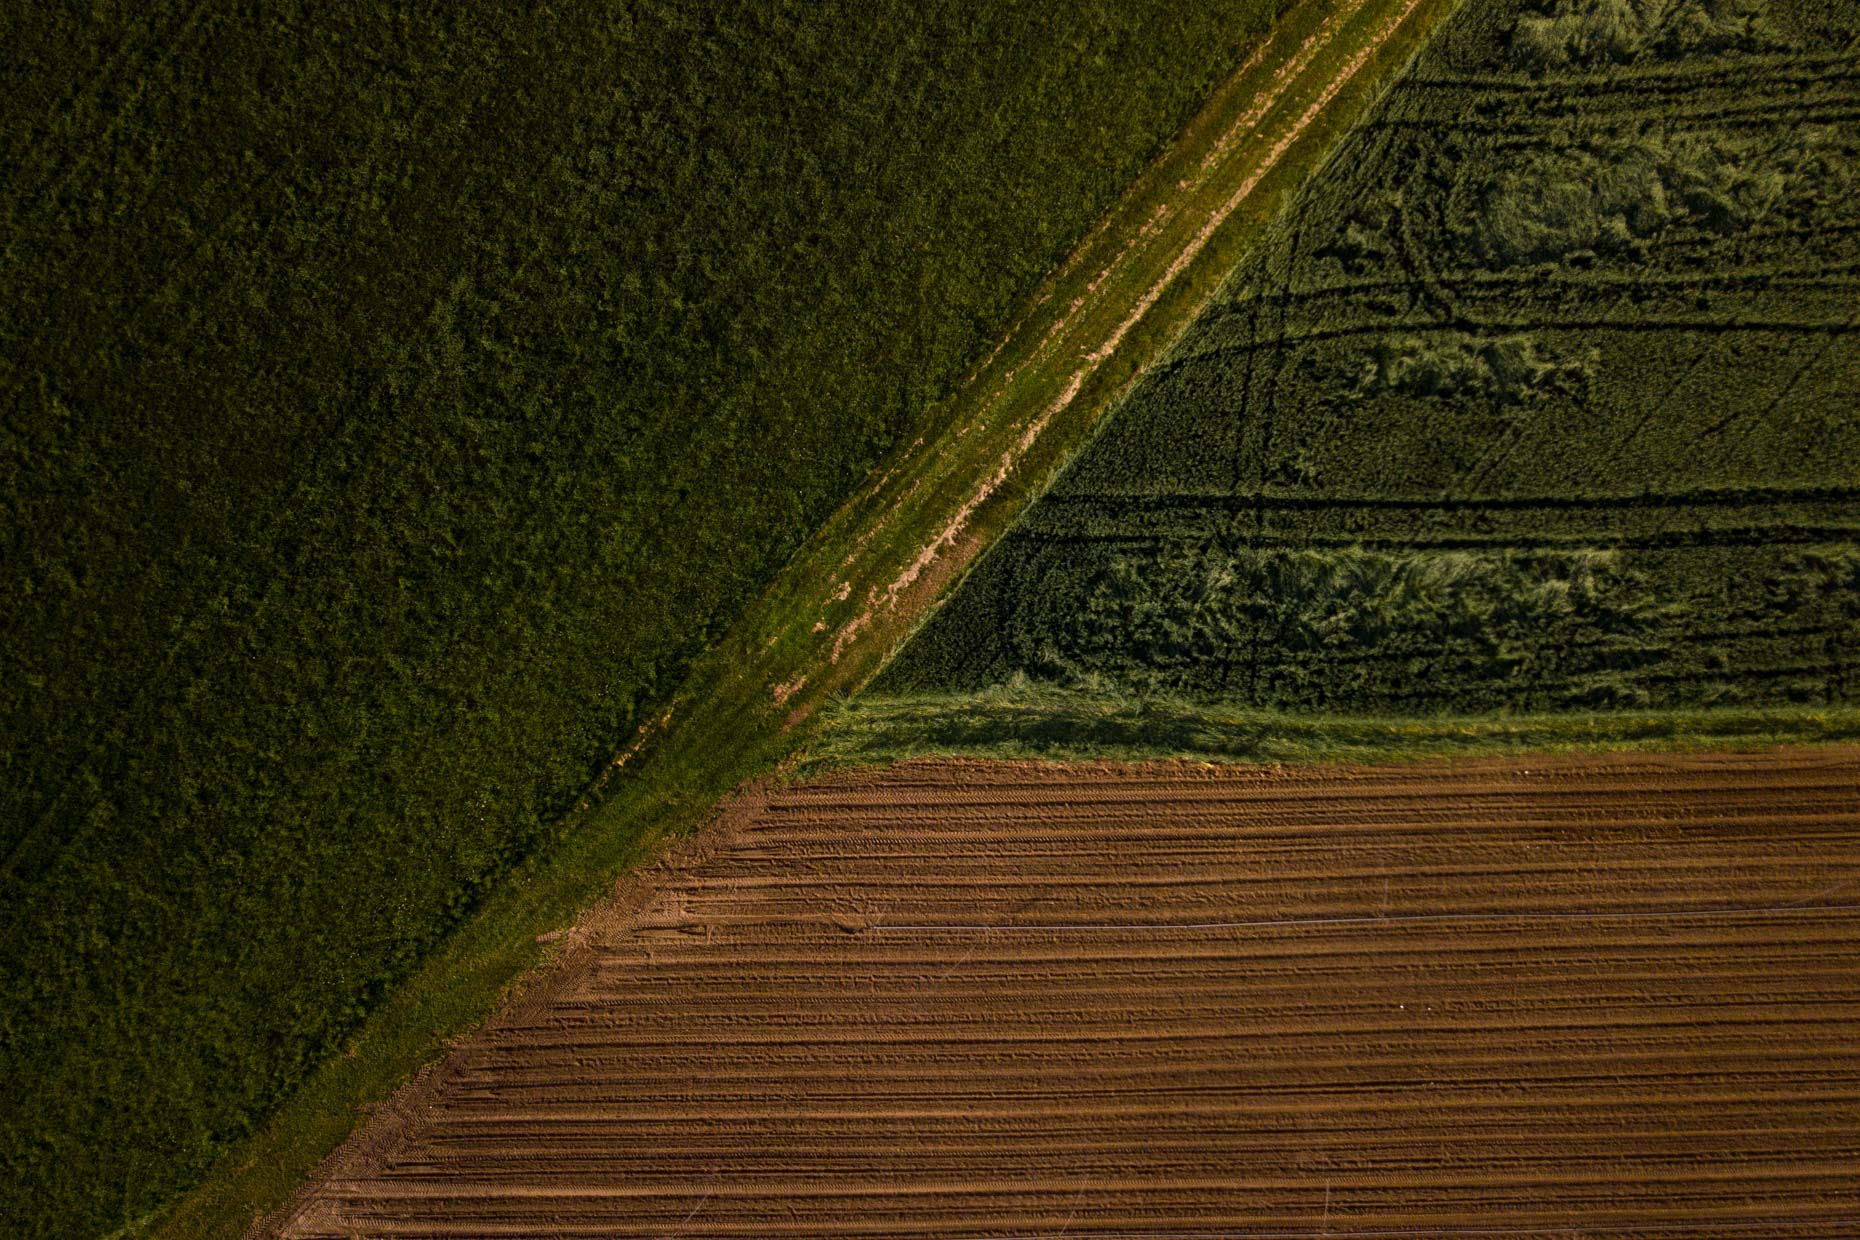 Aerial view of Tilled farm fields